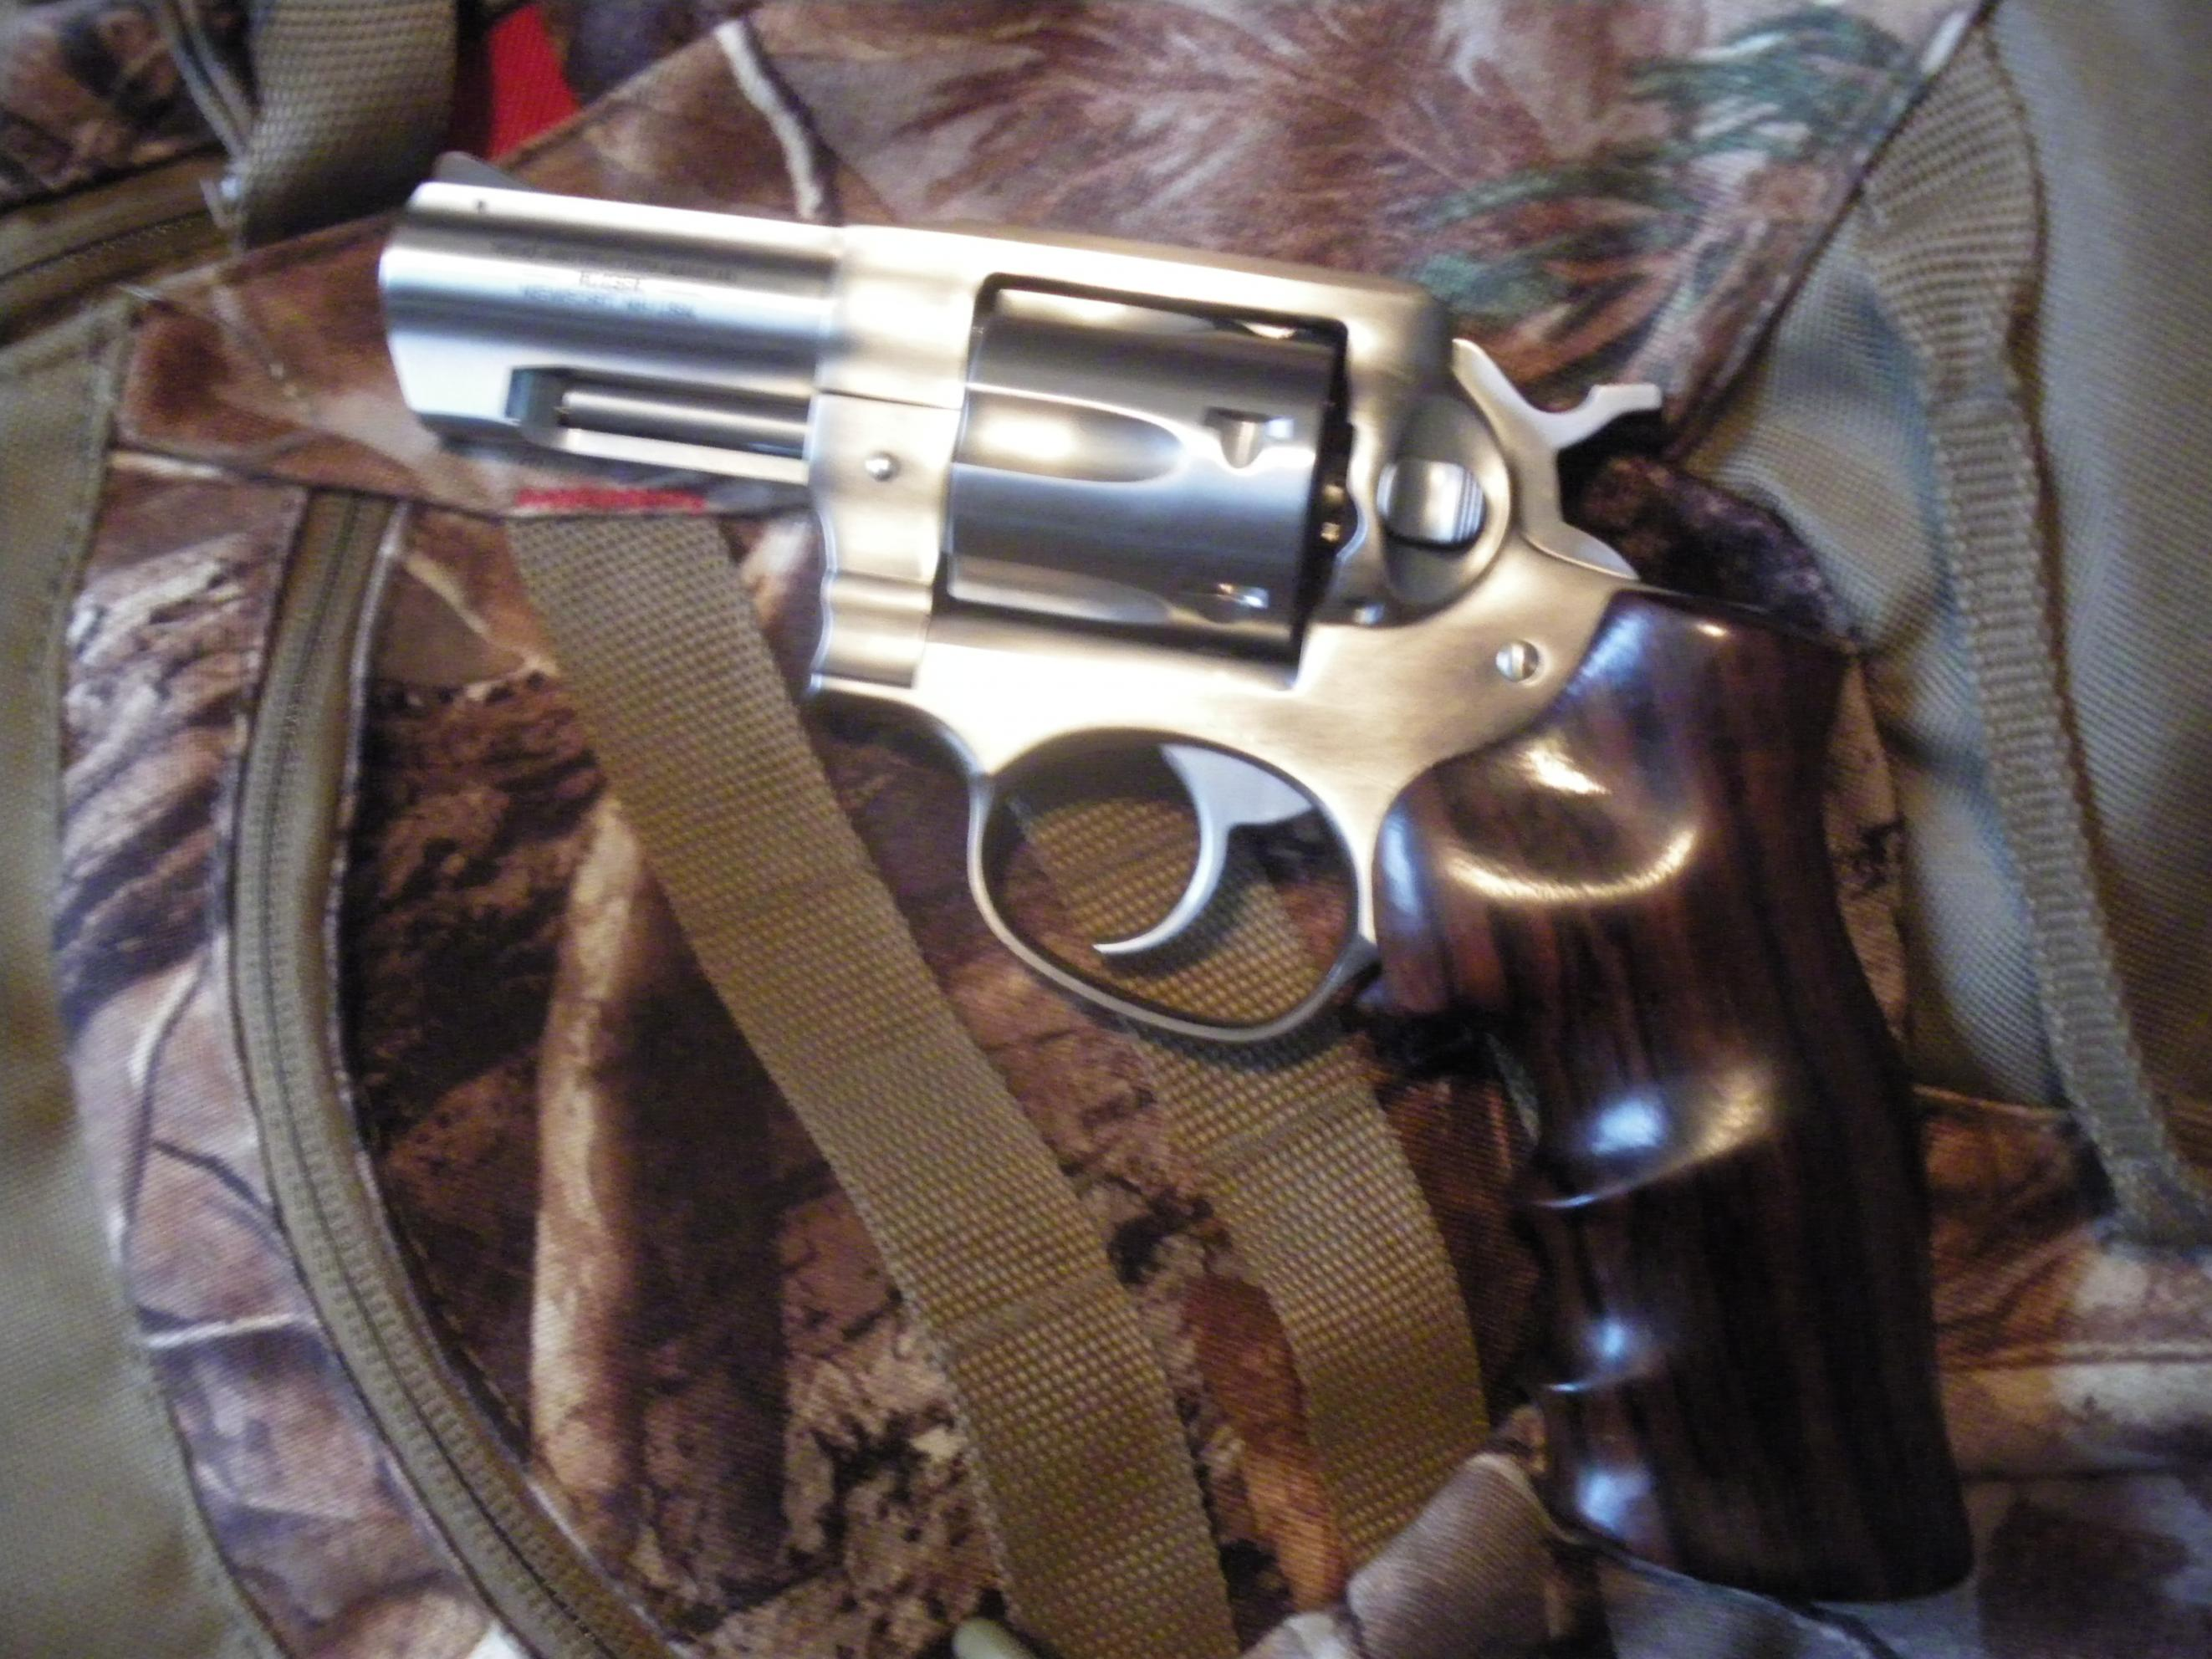 A New Sixgun and some old Don Hume leather....-2012-08-17-17.35.14.jpg